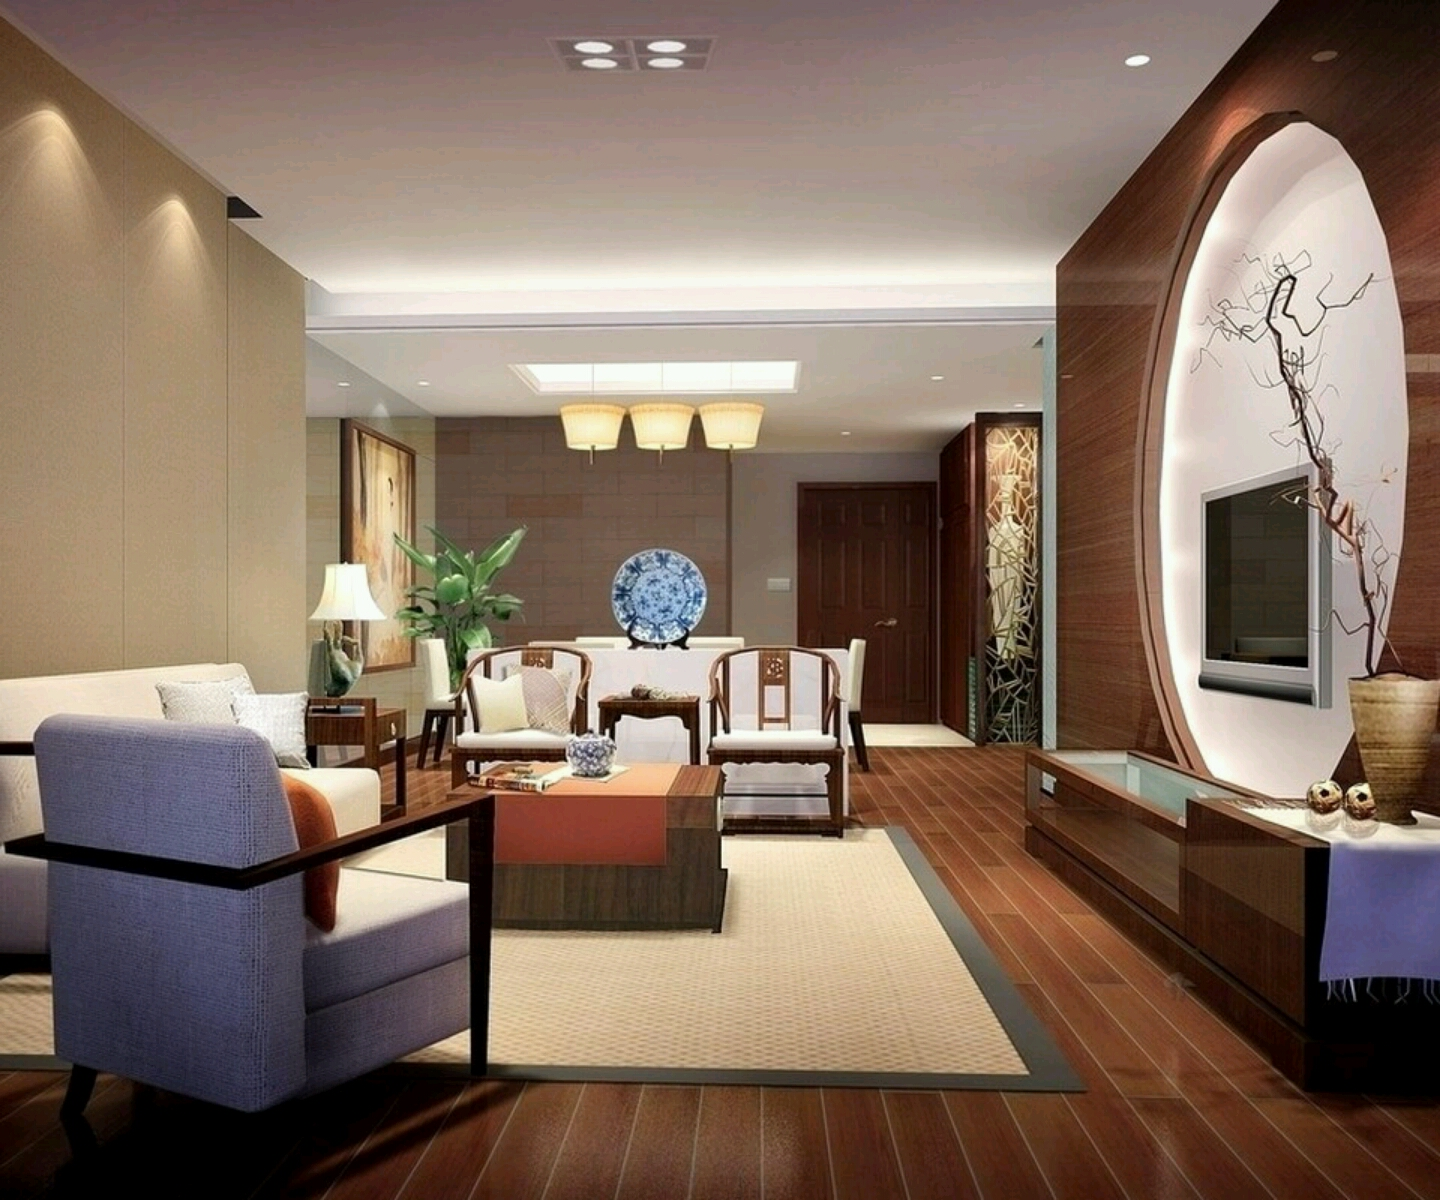 Home Design Ideas For Small Living Room: Luxury Homes Interior Decoration Living Room Designs Ideas